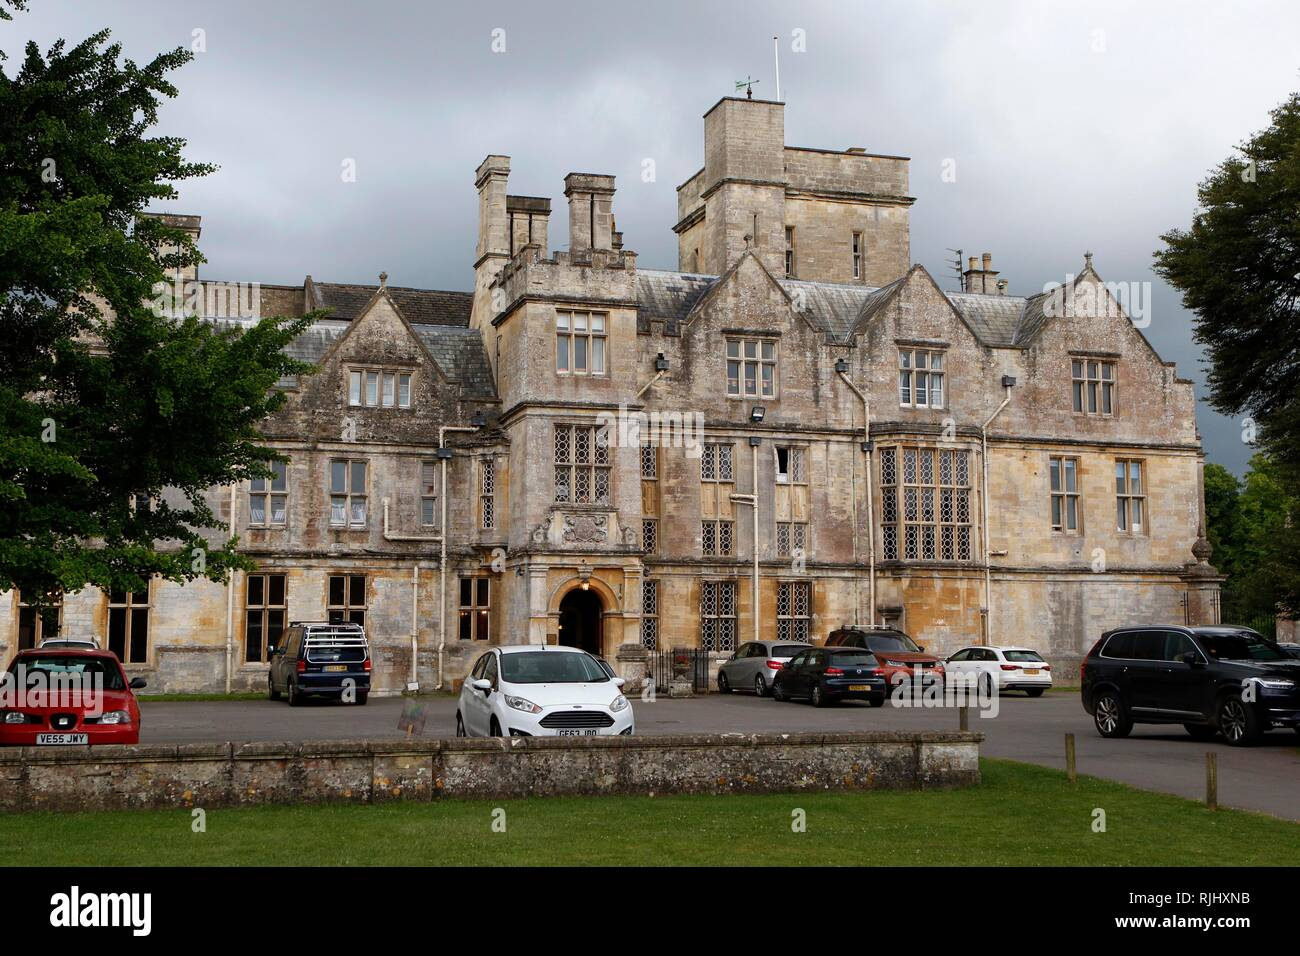 A view of Hatherop Castle School, at Hatherop near Cirencester, Gloucestershire. 20th June 2018 - Stock Image